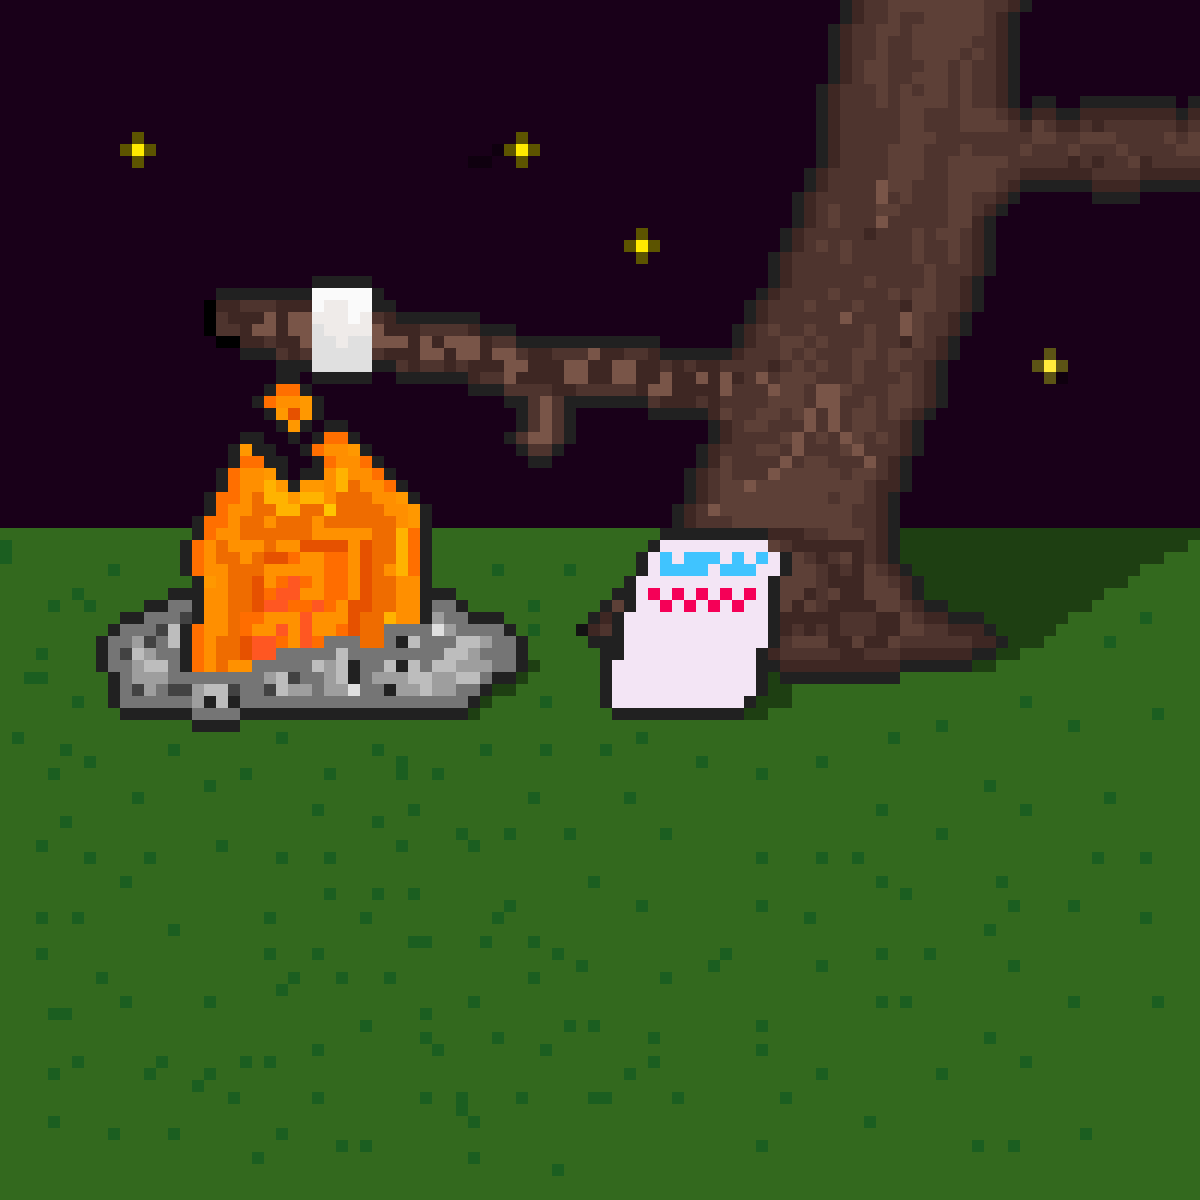 Makin' Smores On A Camping Trip